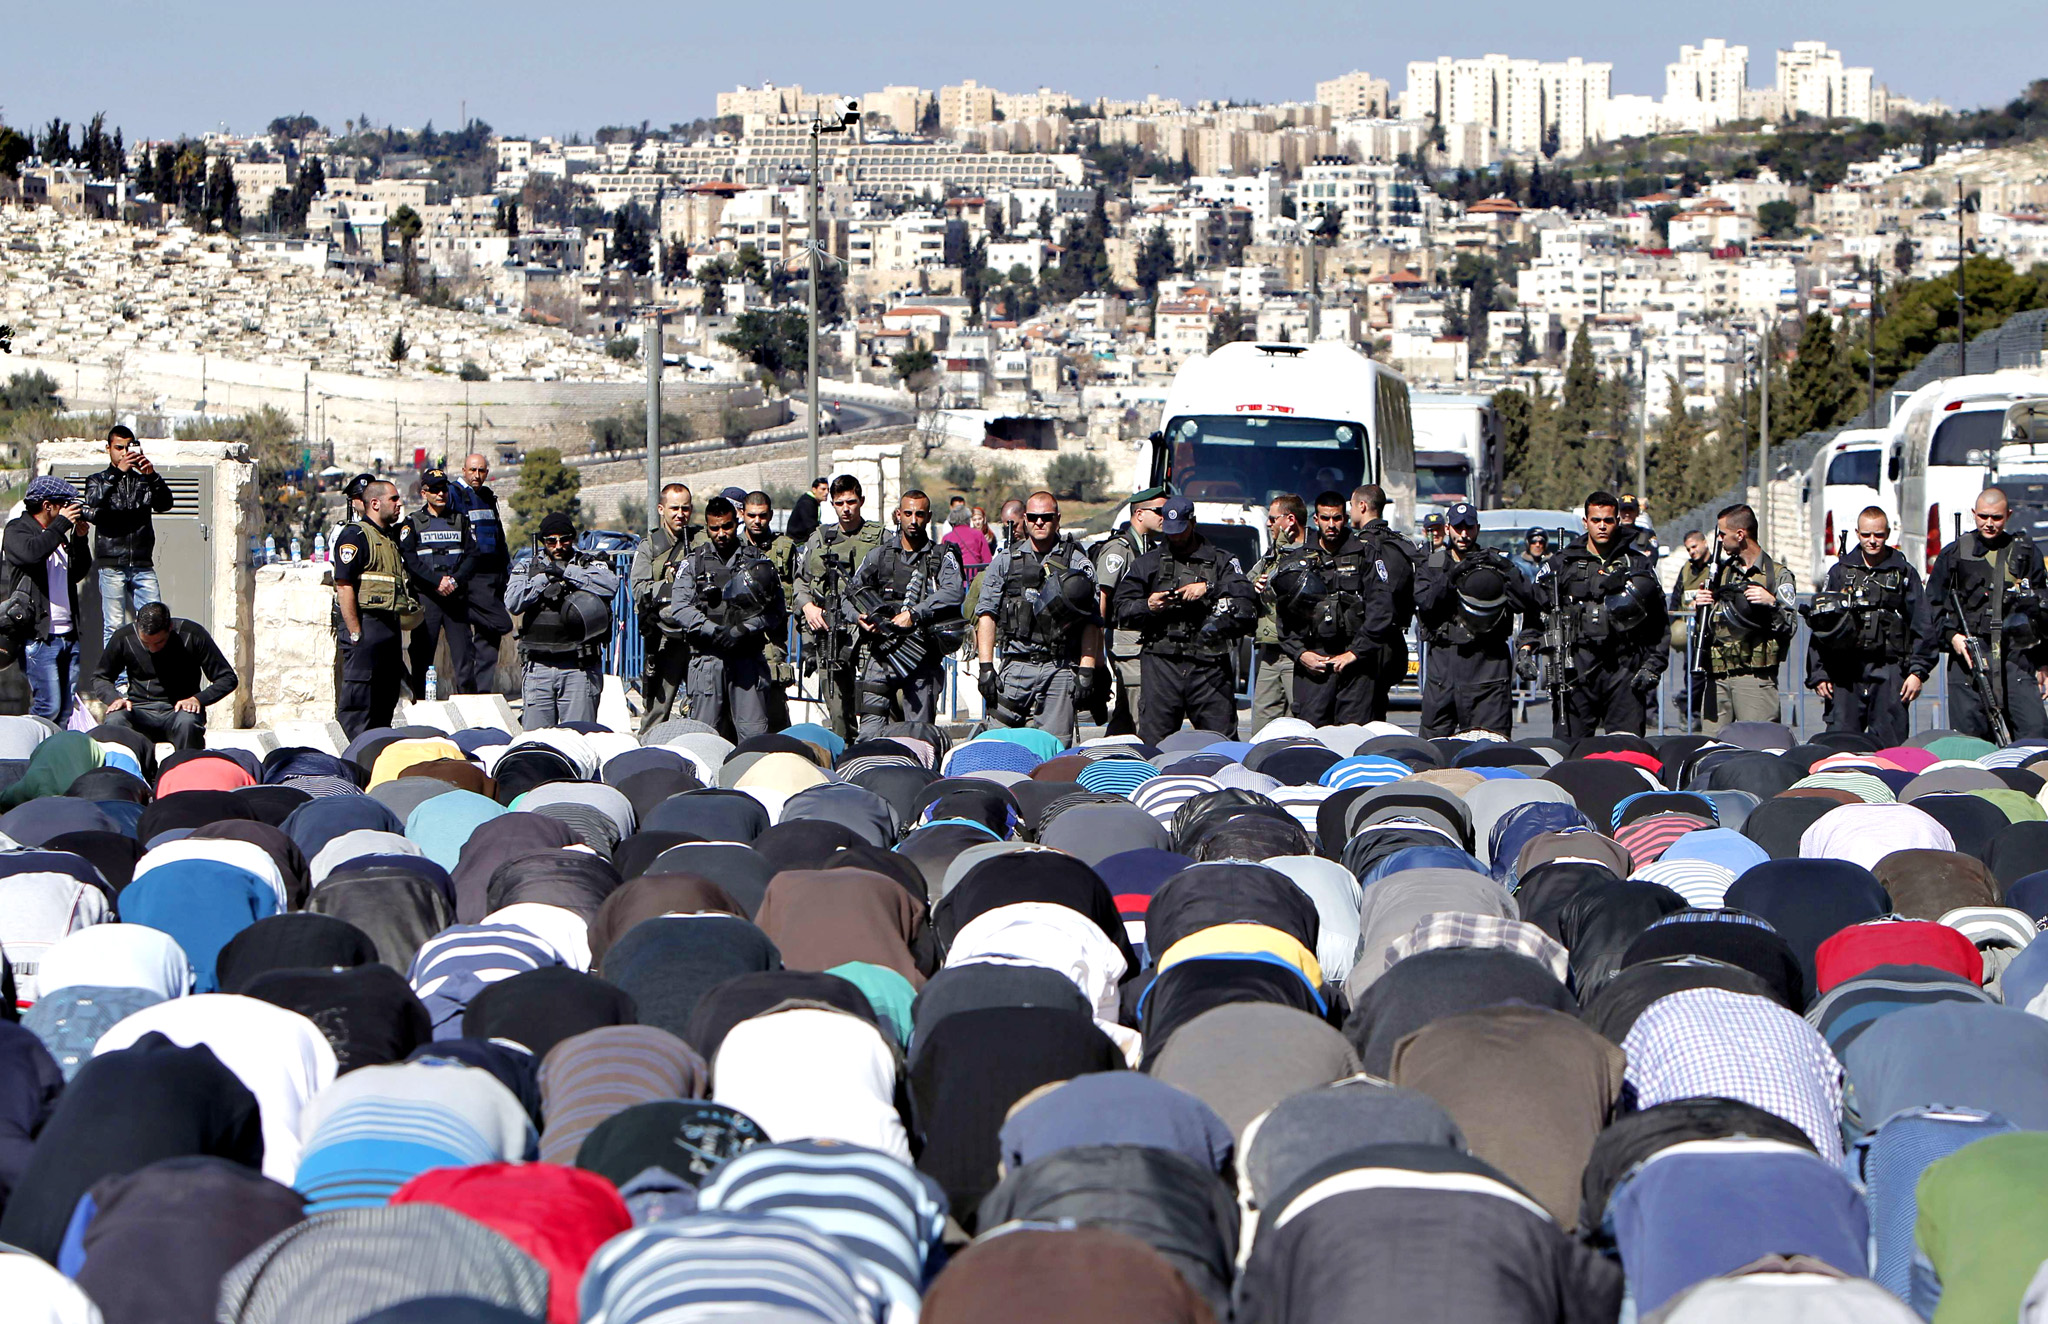 Muslim Palestinians take part in Friday noon prayers blocked by Israeli police in East Jerusalem neighborhood of Ras al-Amud, on February 28, 2014. Clashes broke out following Friday noon prayer three days after police clashed with stone-throwing Palestinians at the al-Aqsa mosque compound, hours ahead of a debate in the Israeli parliament on Jews' right to pray at the compound, which is currently denied. The flashpoint compound sits above the Western Wall plaza and houses the Dome of the Rock and the Al-Aqsa mosque, and is Islam's third-holiest site.  AFP PHOTO / AHMAD GHARABLIAHMAD GHARABLI/AFP/Getty Images